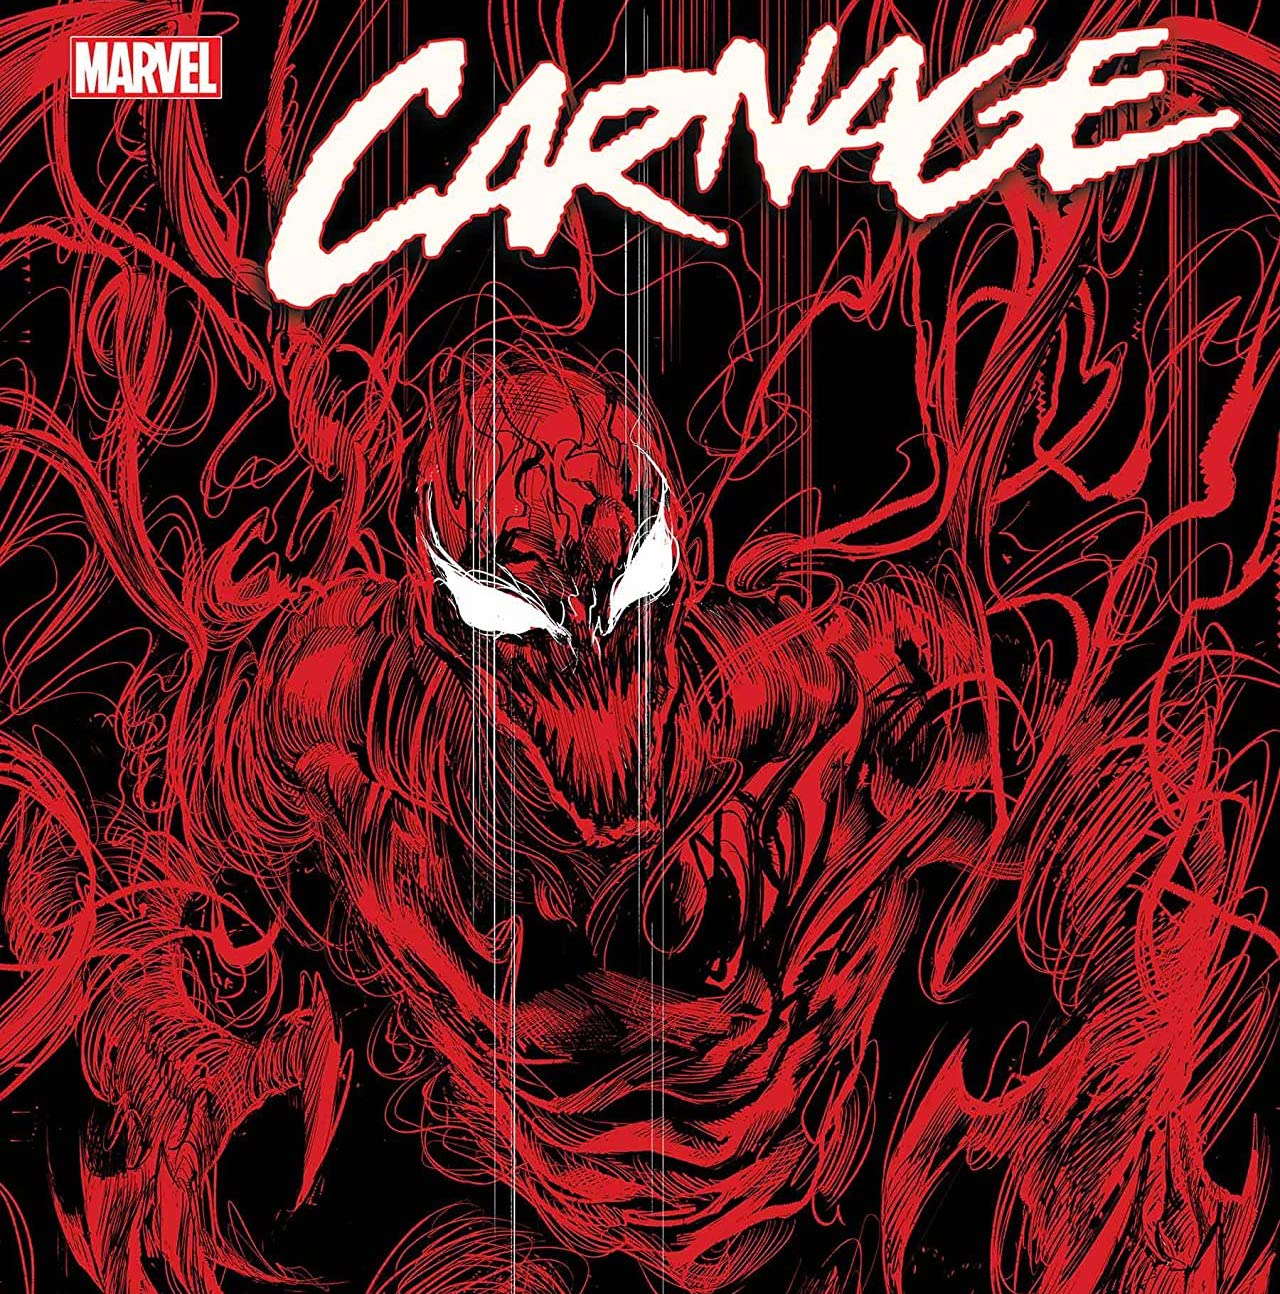 'Carnage: Black, White & Blood' #2 is good horror comics